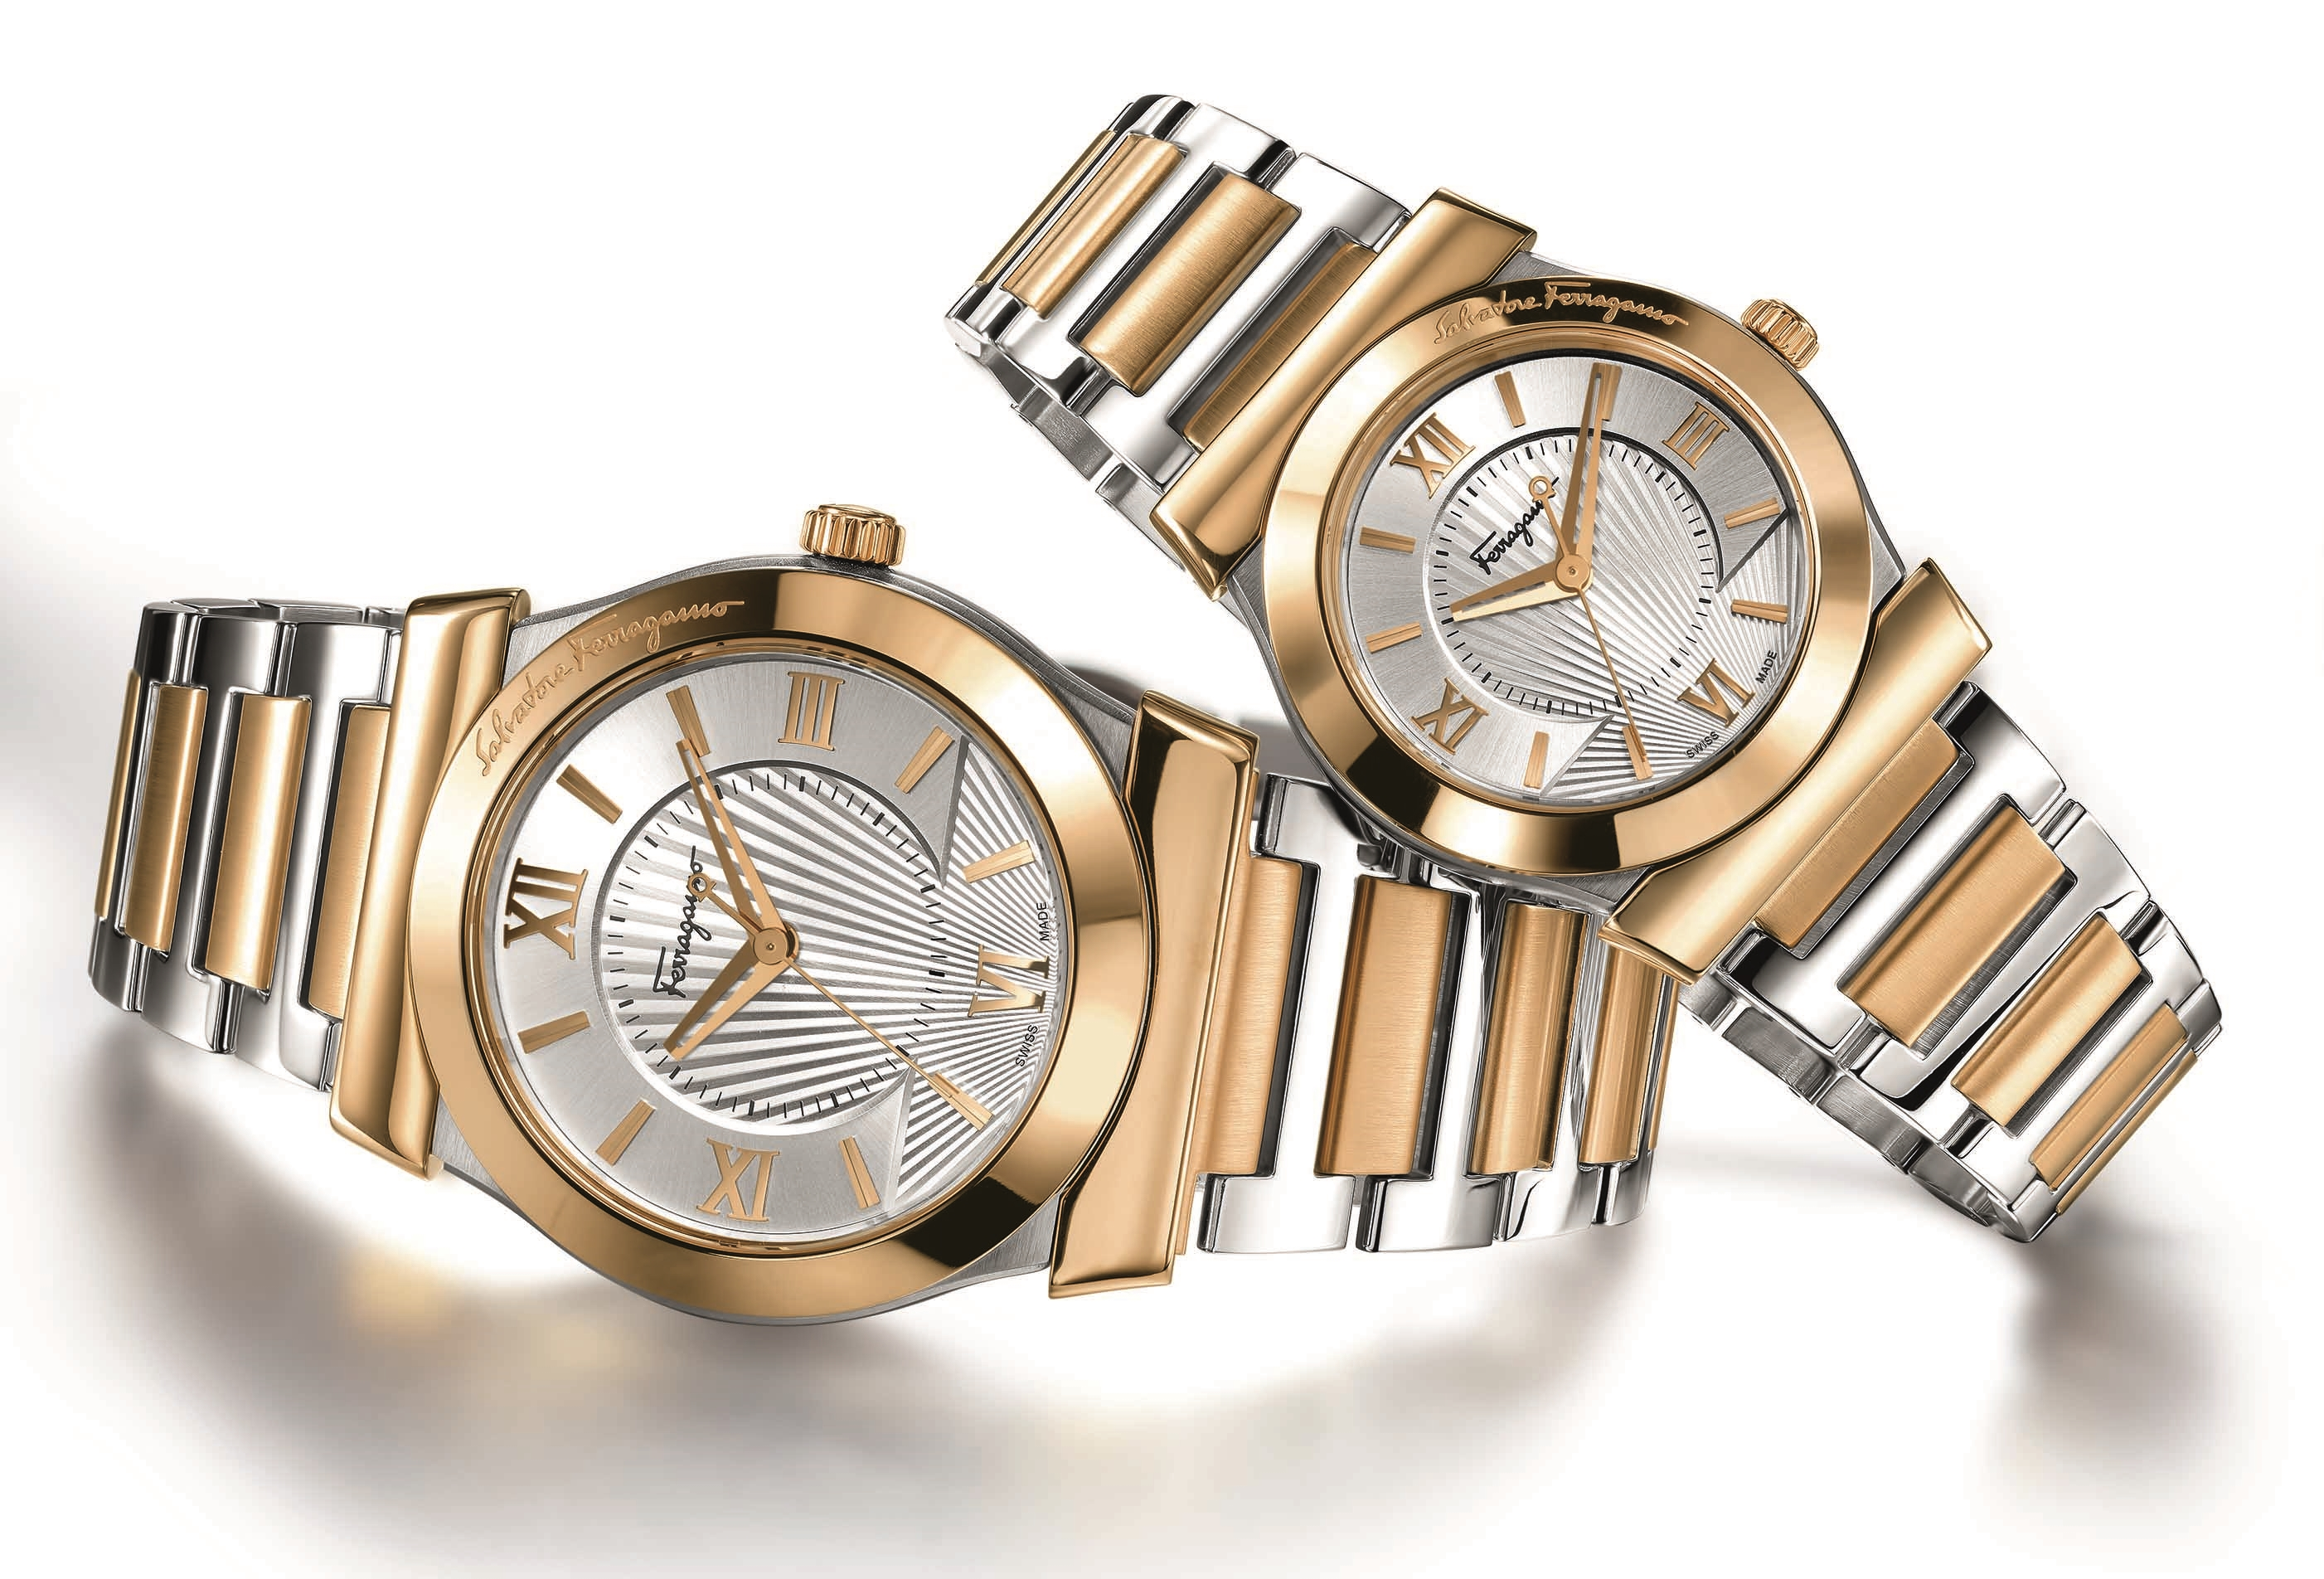 free chronometer watch golden images en heavy steel hand watches dial durable gold wrist stainless strong photo